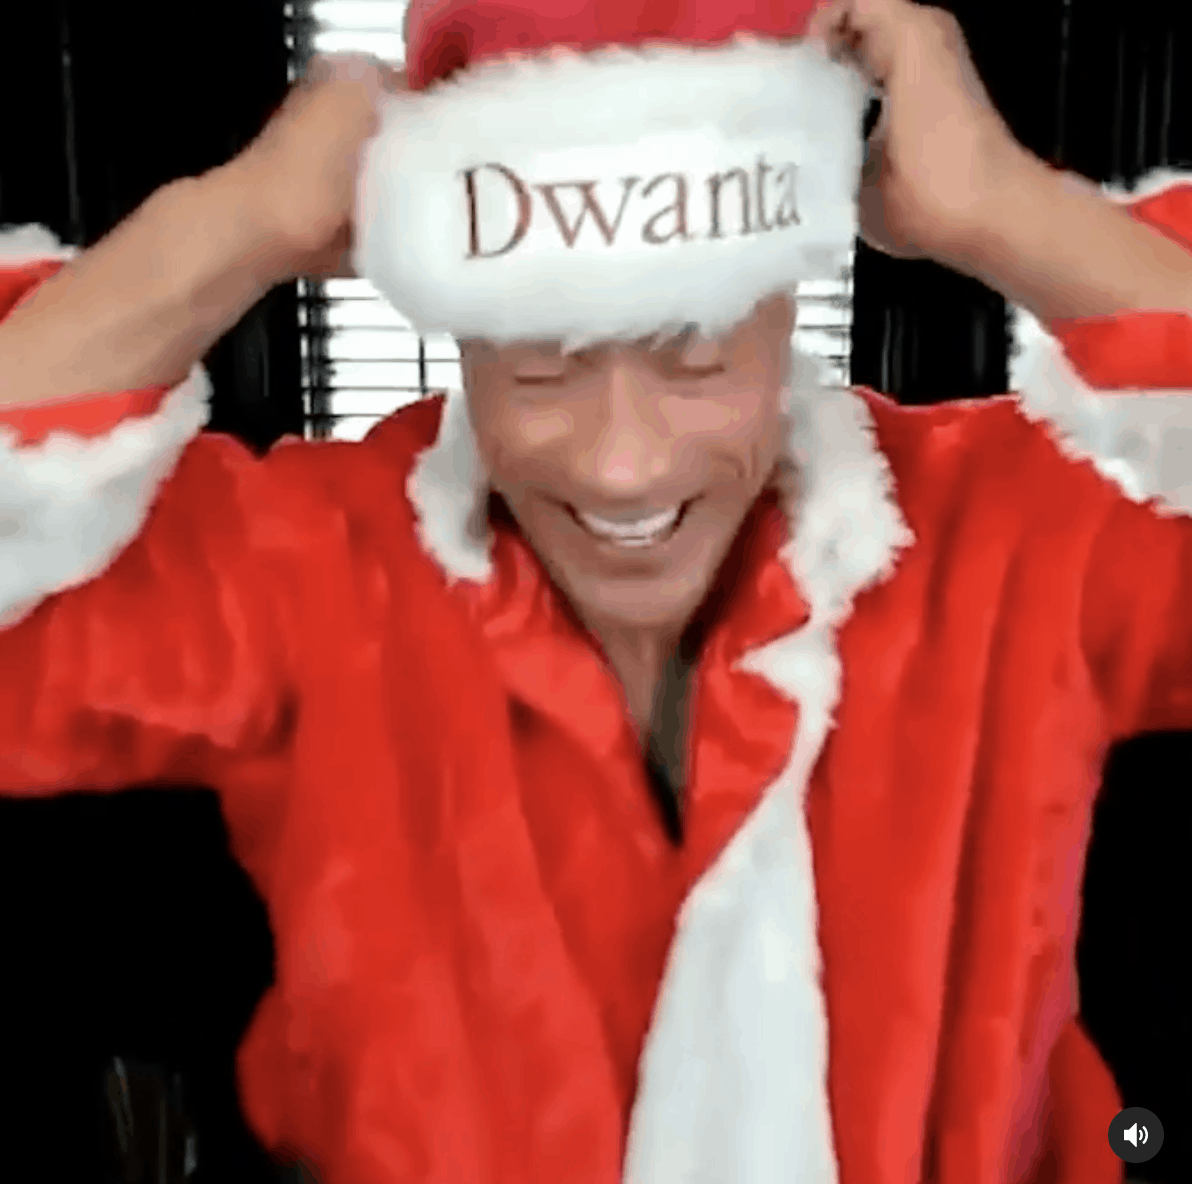 Dwayne Johnson (THE ROCK) : Dwanta Claus in this Christmas